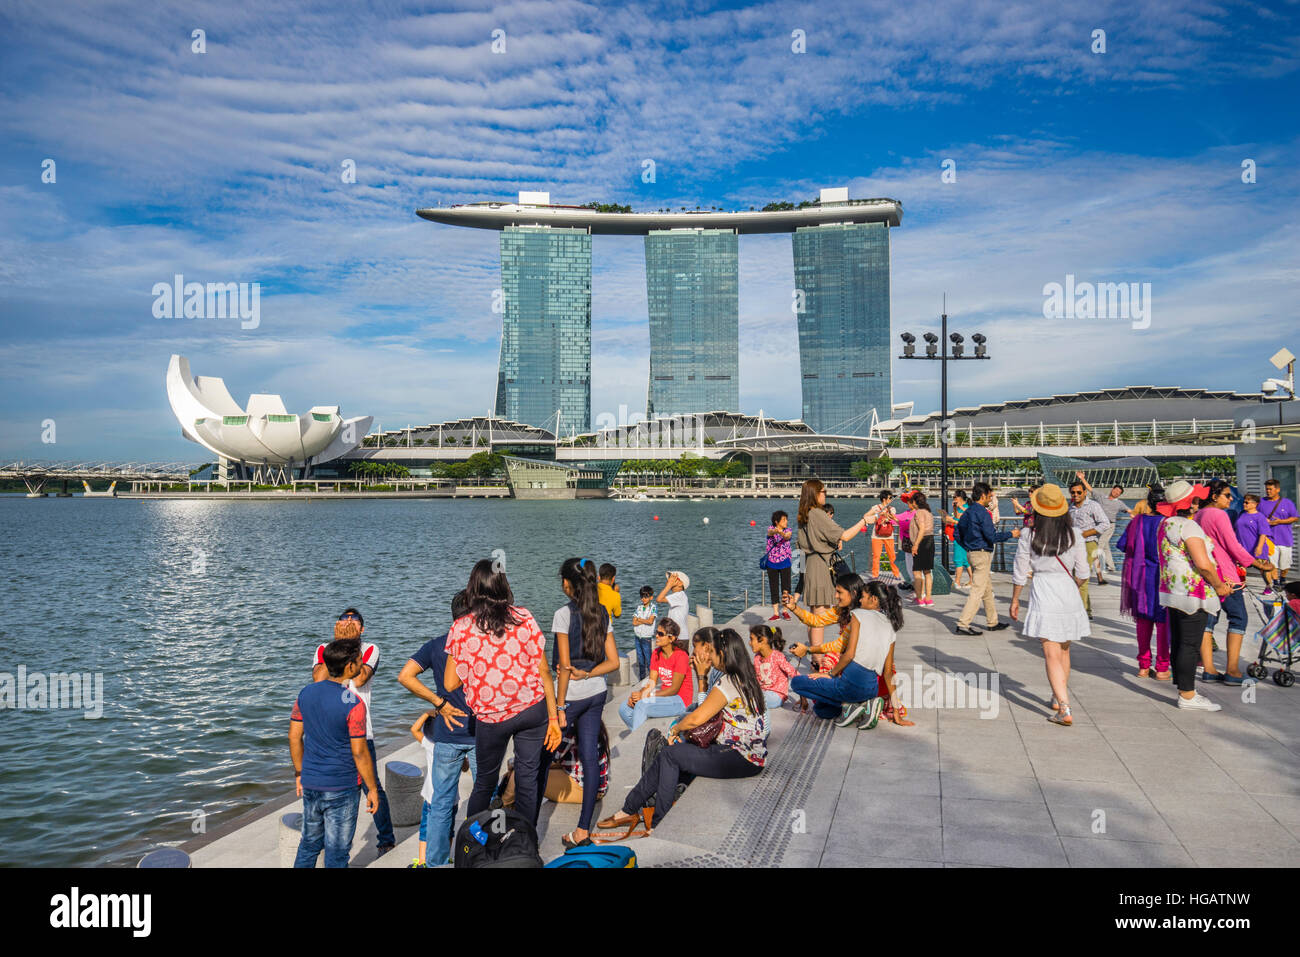 Singapore, view of the Marina Bay Sands resort, the Bayfront Shoppes and the flower-shaped ArtScience Museum across - Stock Image